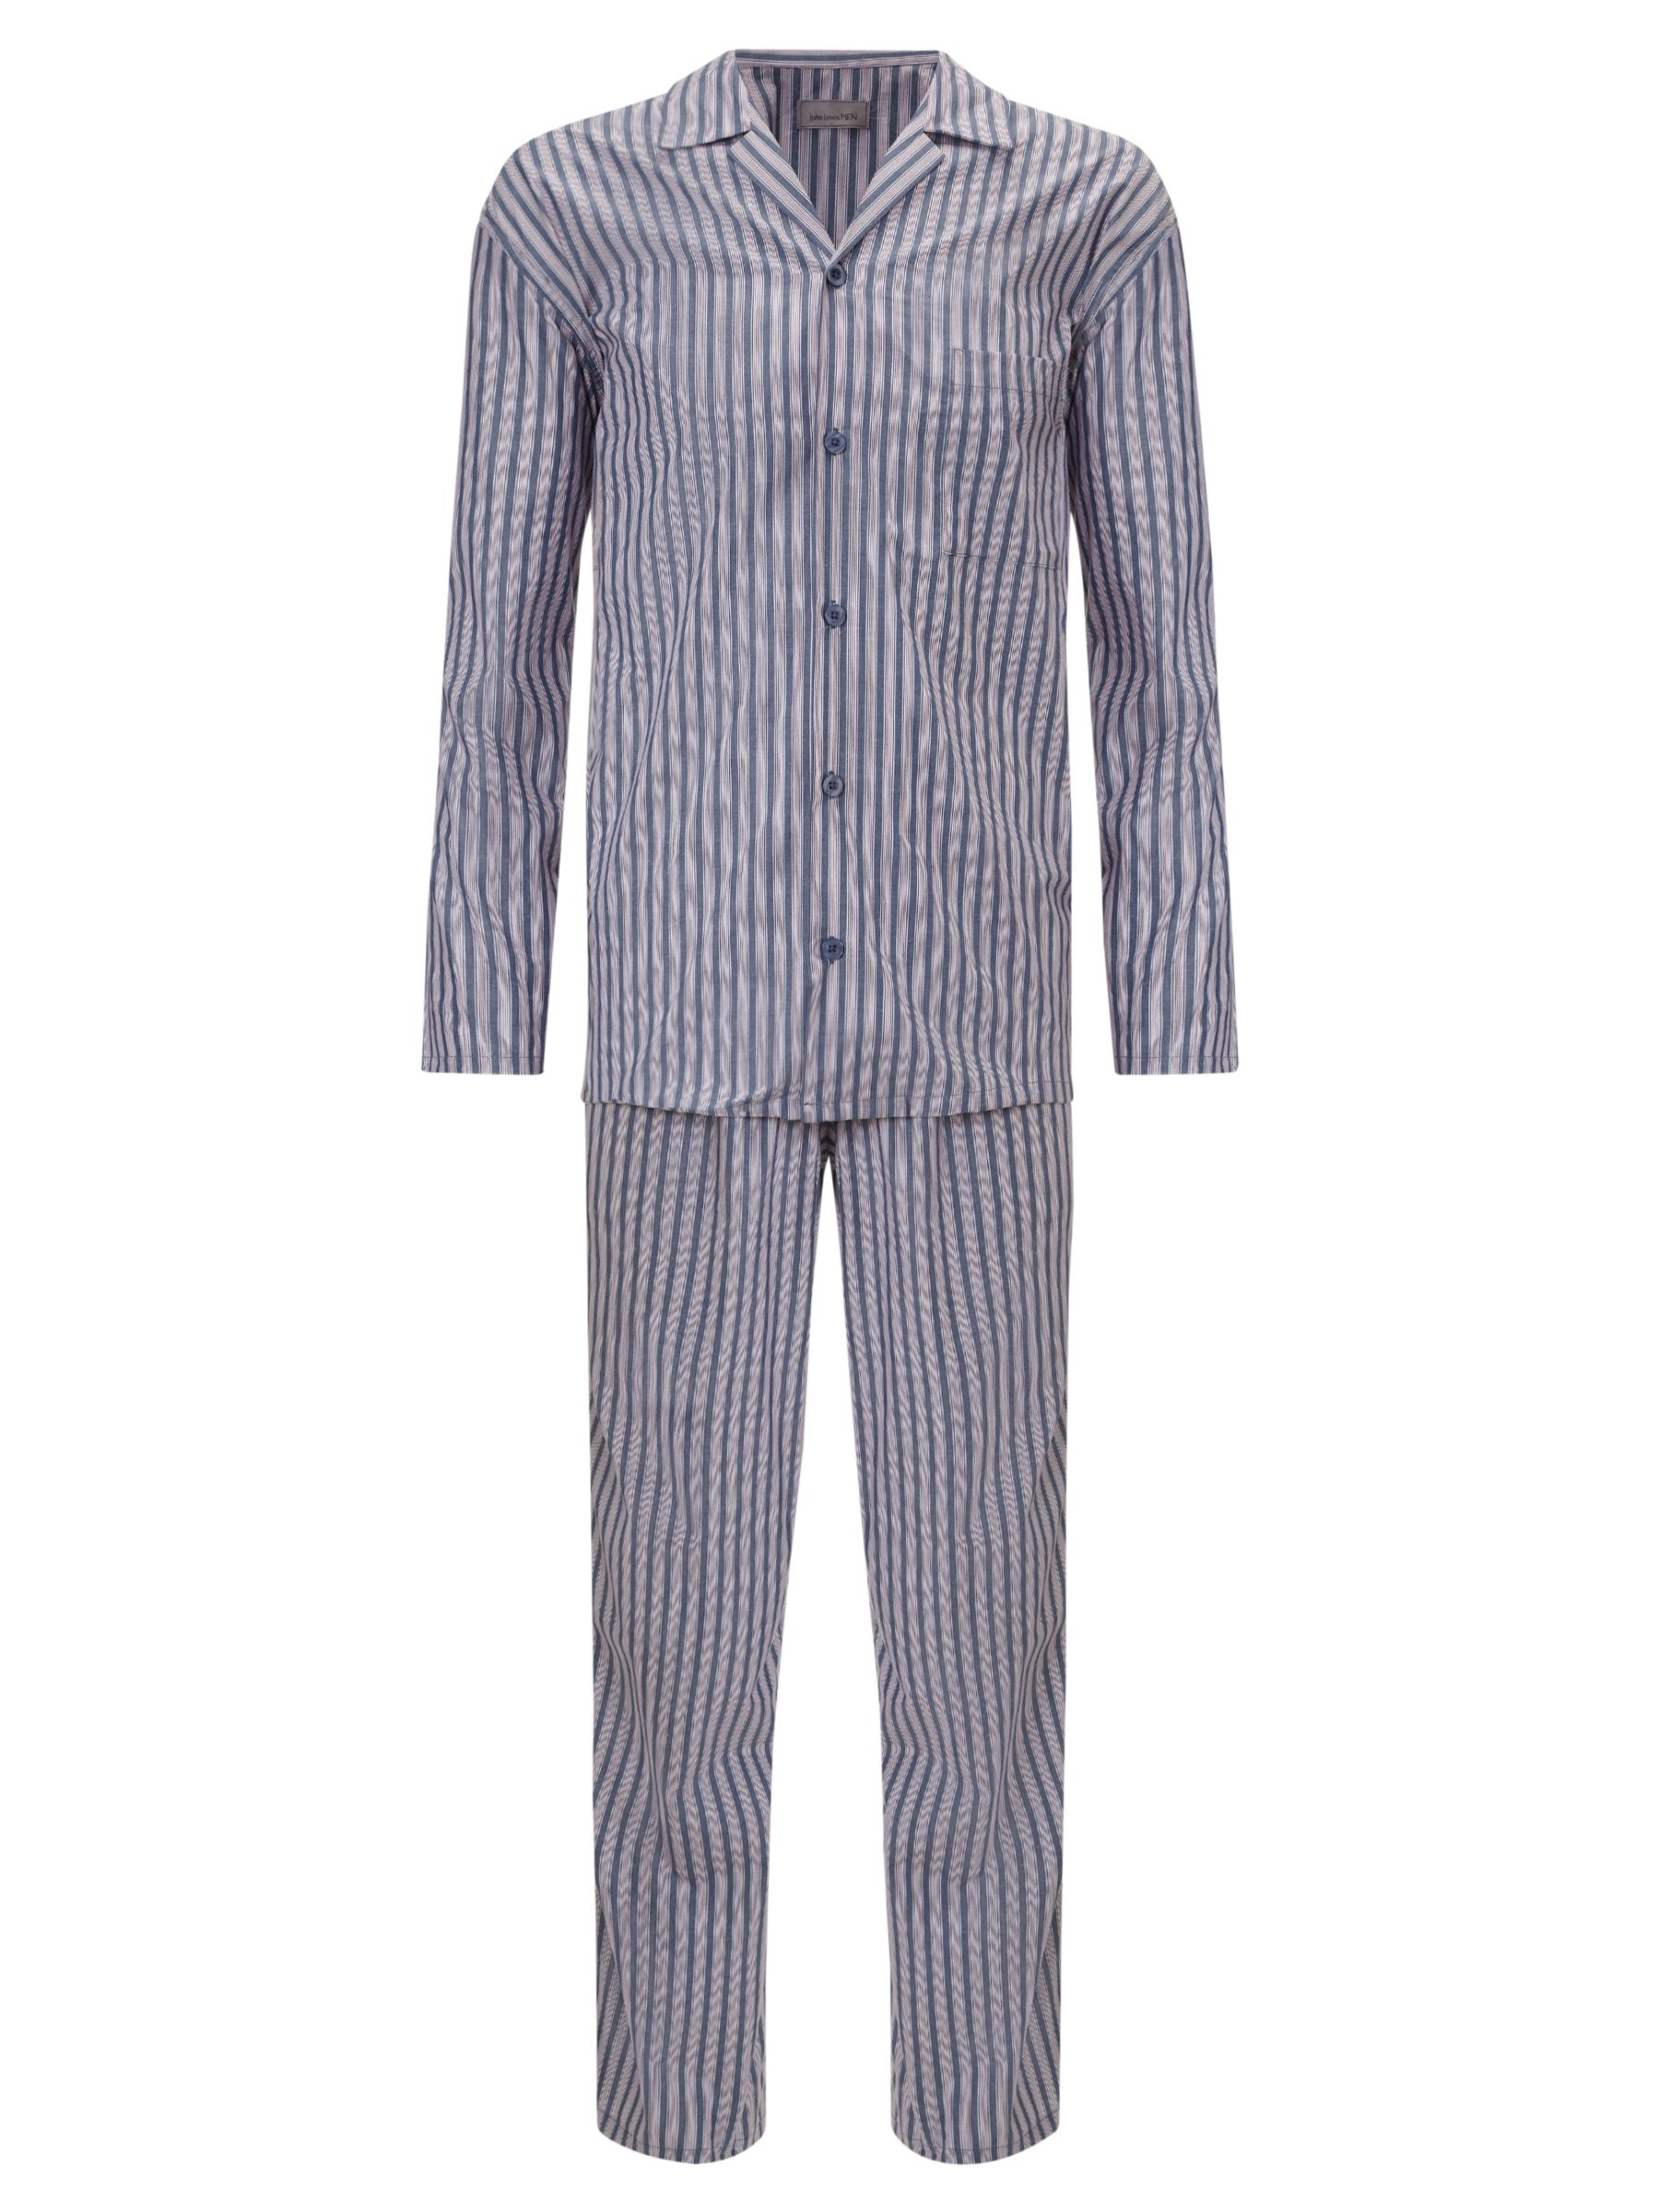 John Lewis Stripe Cotton Pyjamas